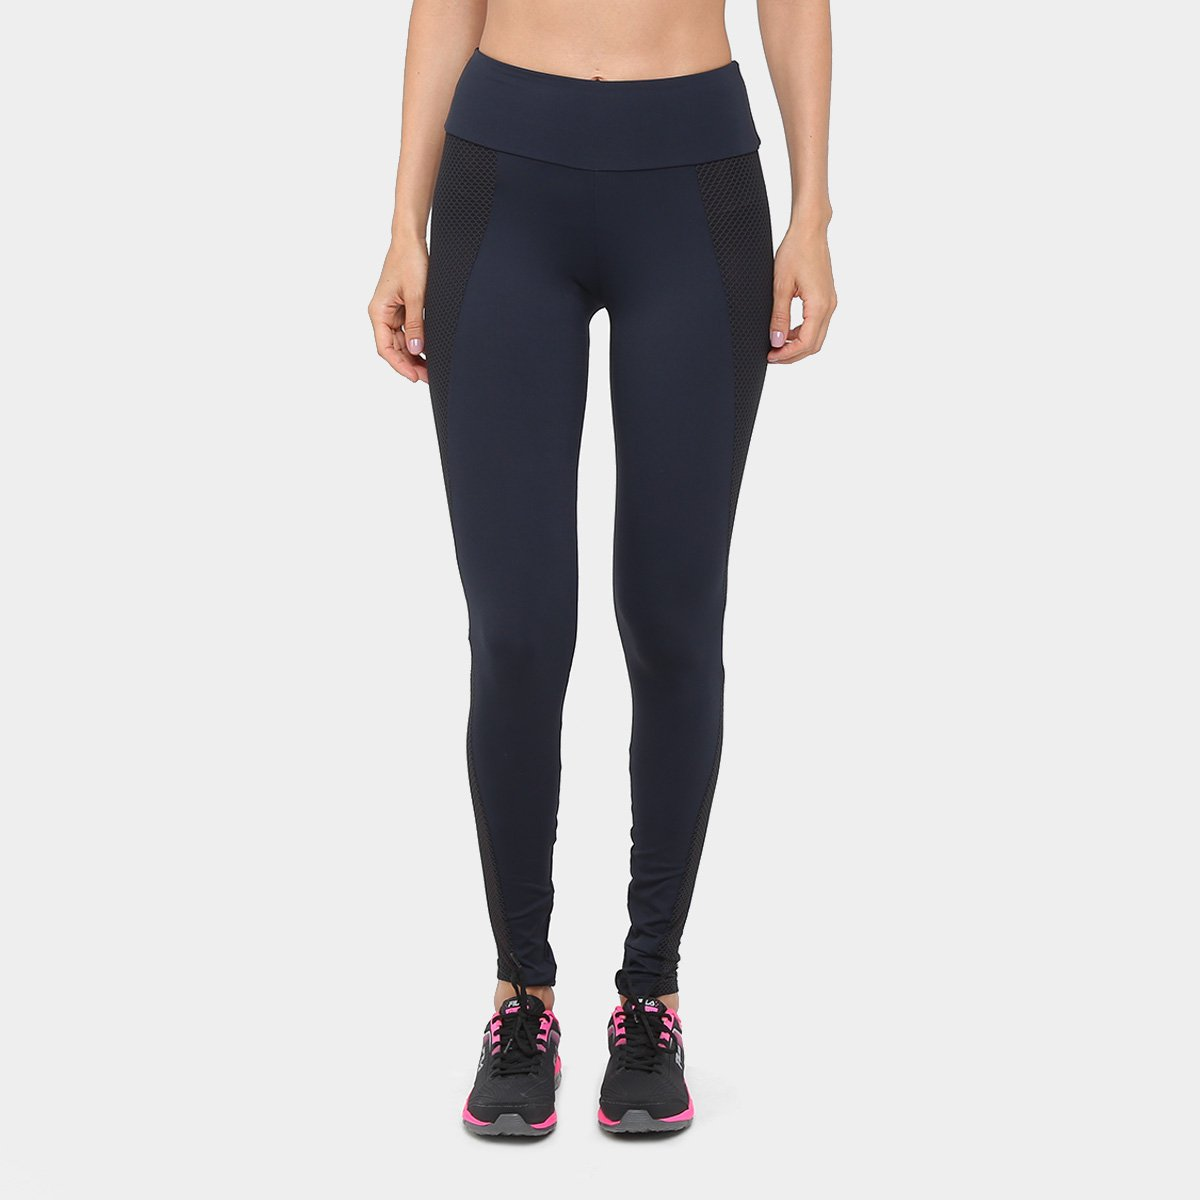 Calça Feminina Legging Legging Legging Calça Feminina Fila Fila Preto Rock Rock Preto Calça xH0qRwPwO